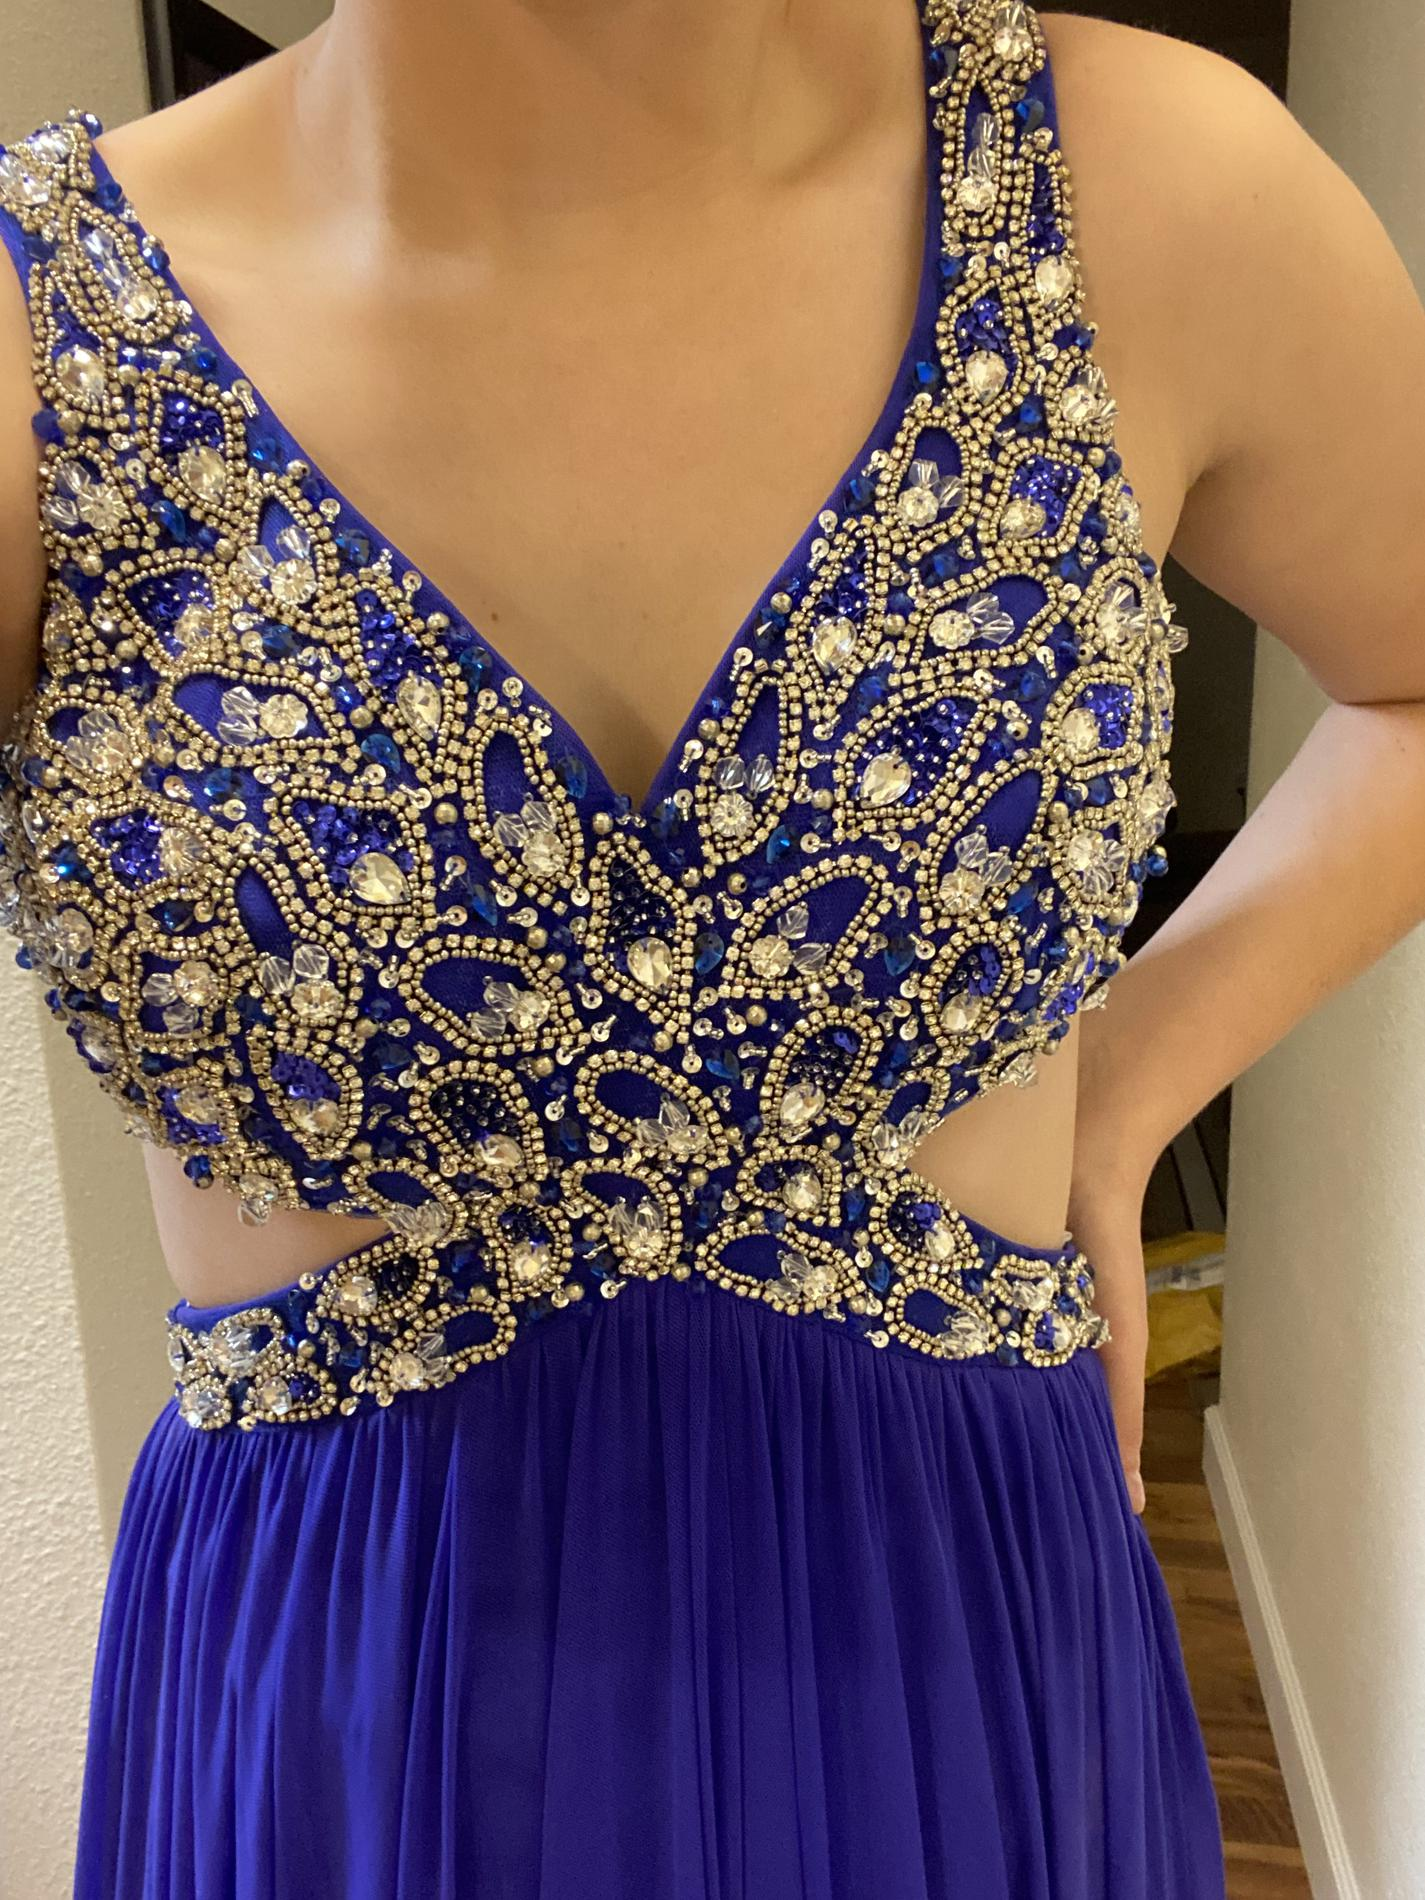 Jovani Blue Size 4 Prom A-line Dress on Queenly